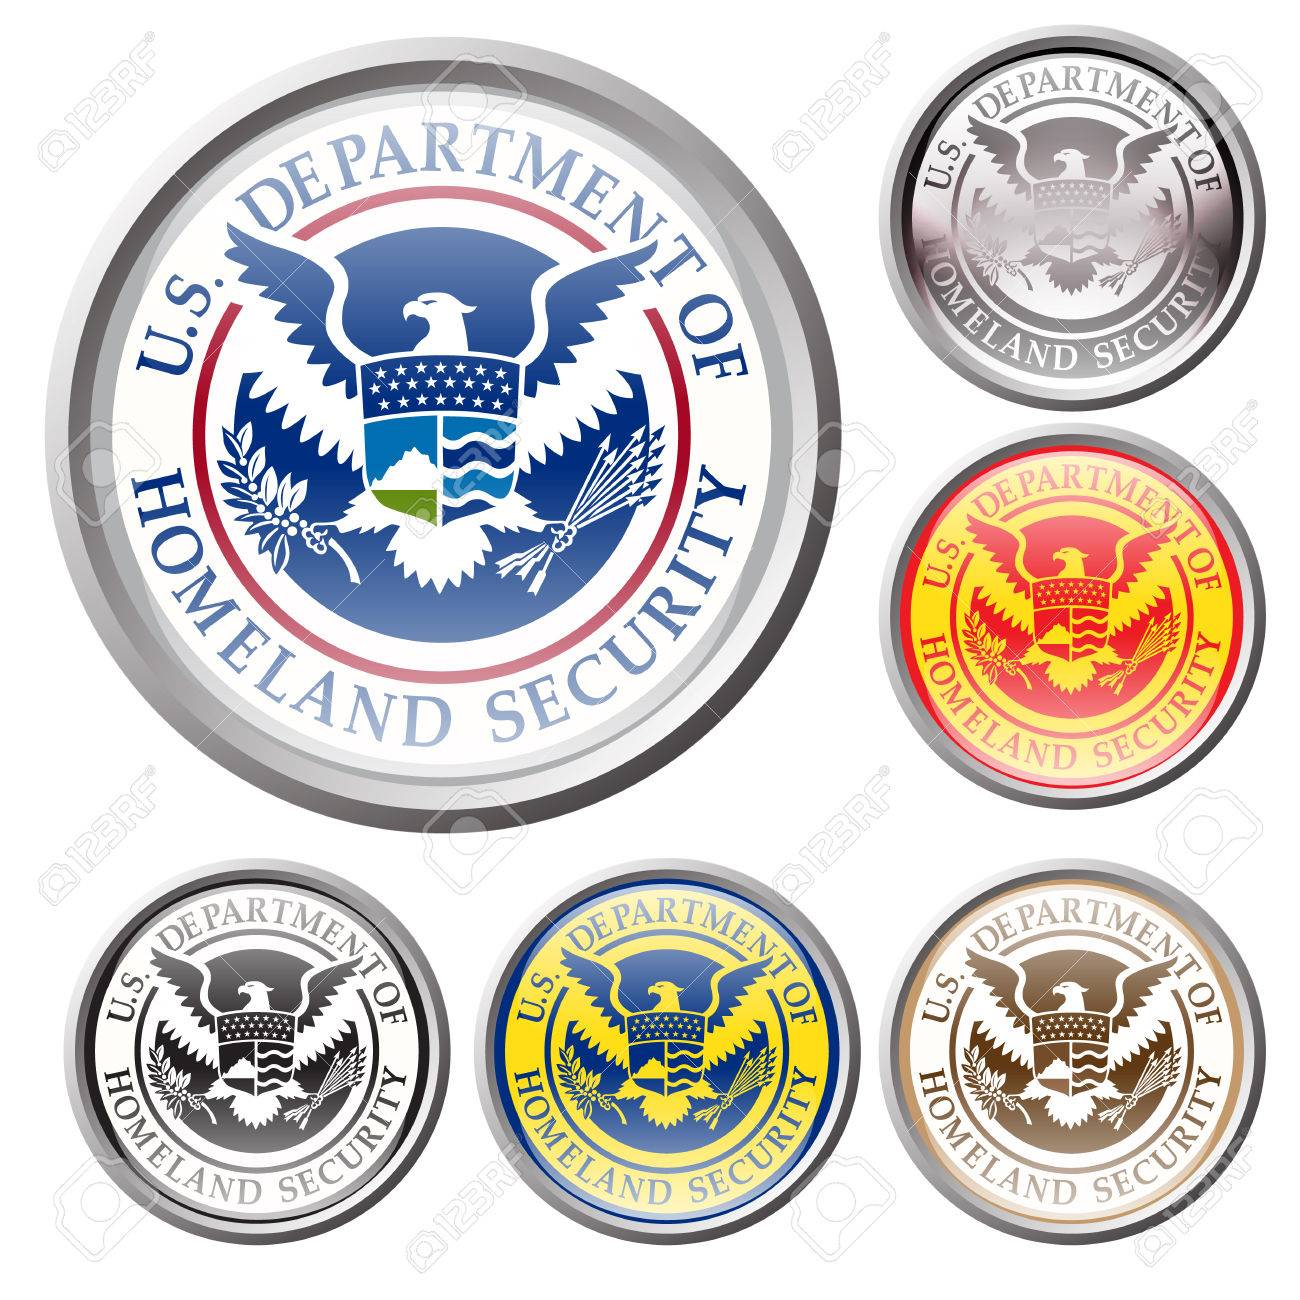 Emblem of united state department of homeland security royalty emblem of united state department of homeland security stock vector 44707261 buycottarizona